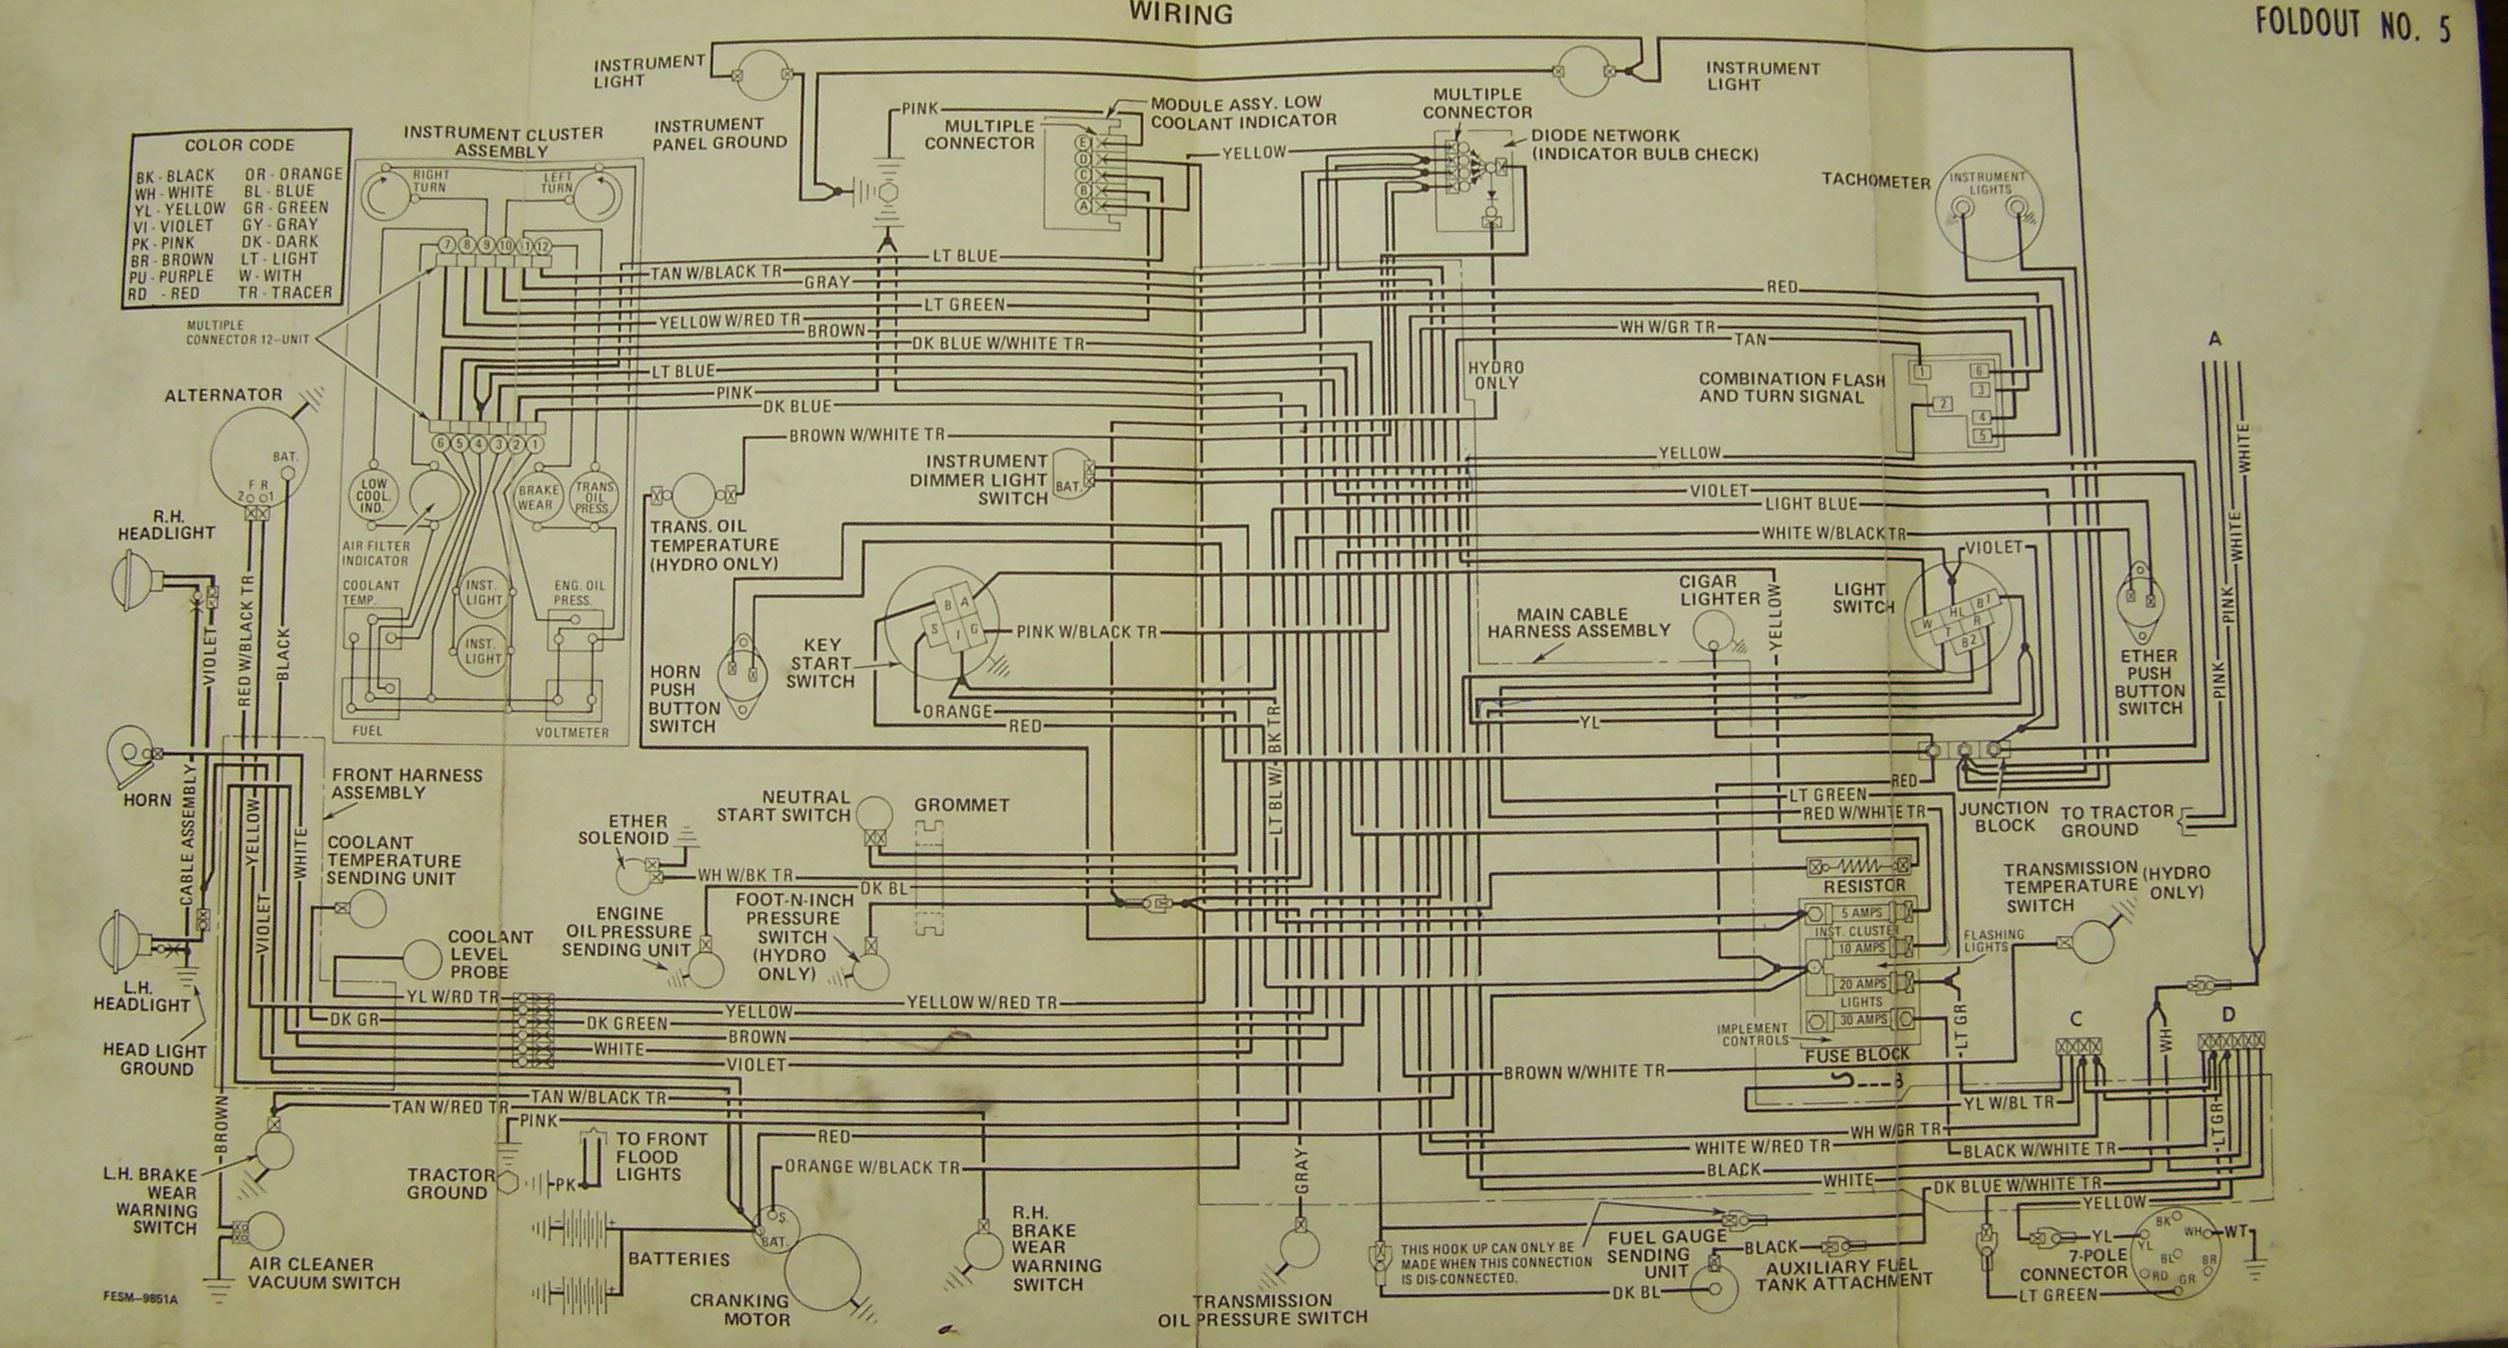 Carter & Gruenewald Co. Inc. - IH-FARMALL Tractor Electrical Wiring DiagramsCarter and Gruenewald